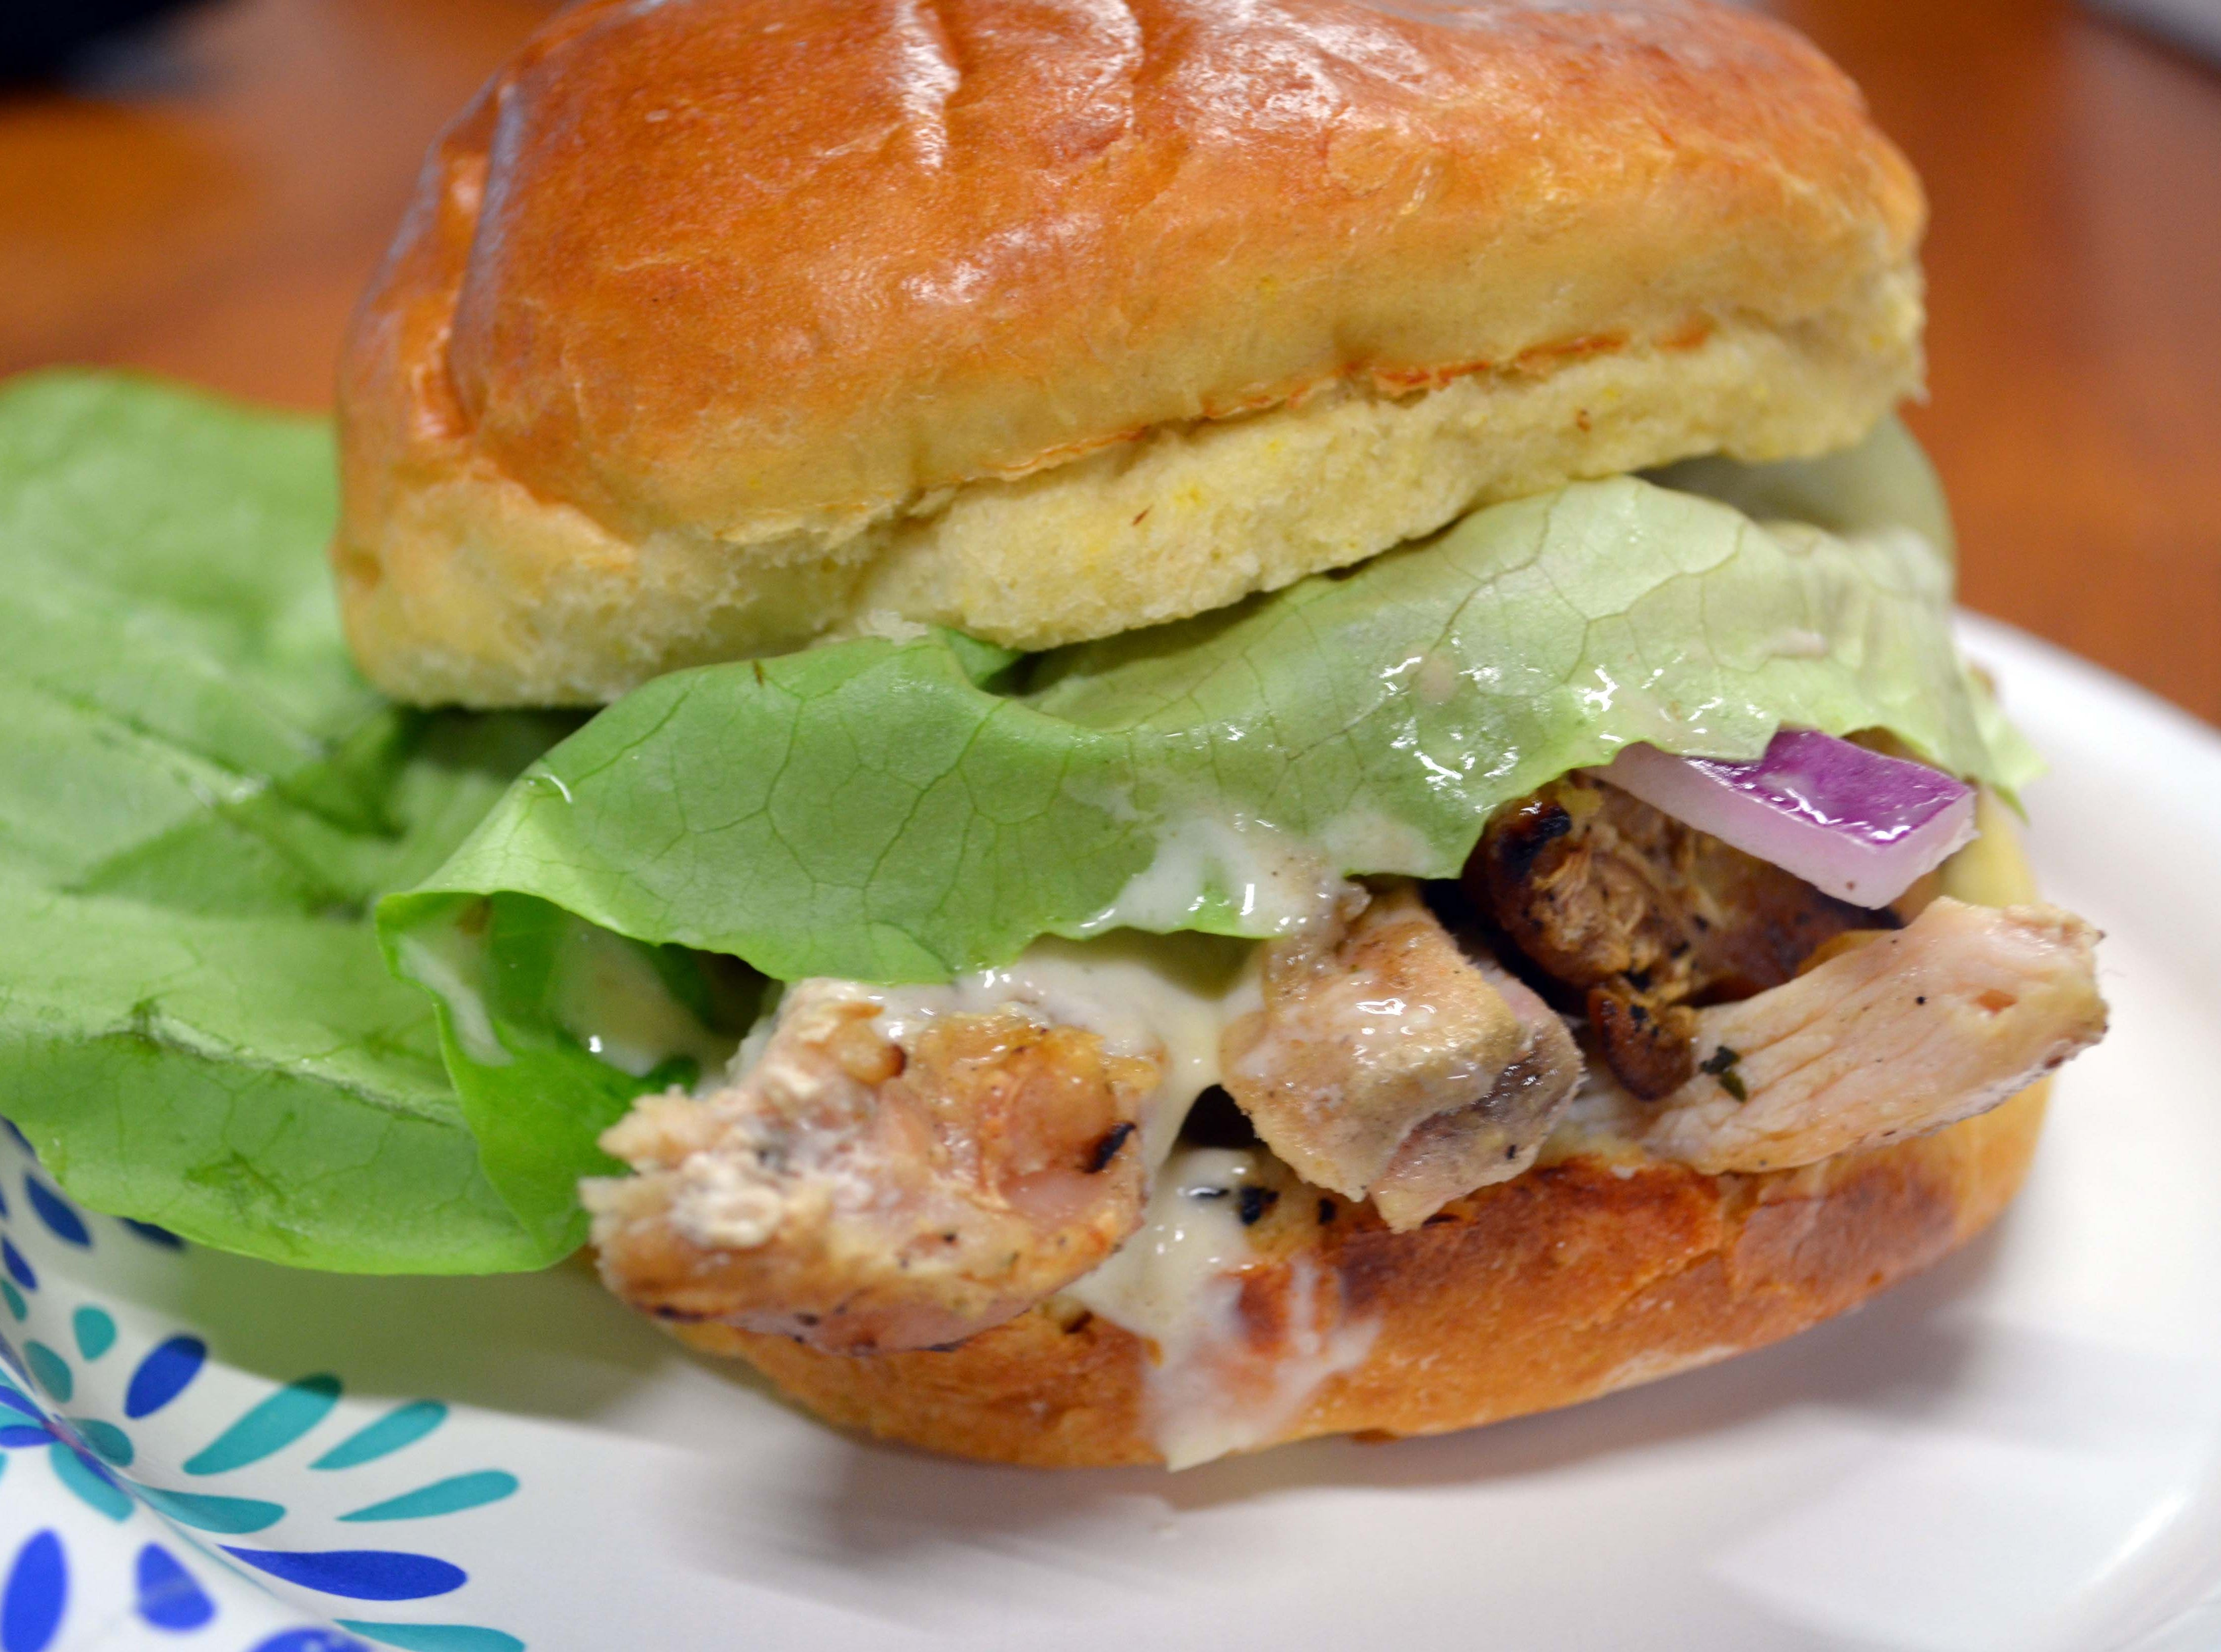 Grilled chicken sandwiches with pineapple garlic sauce are offered at the Perdue Farms food truck during the National Folk Festival in Salisbury, Maryland on Sept. 7-9, 2018 in Salisbury, Maryland.